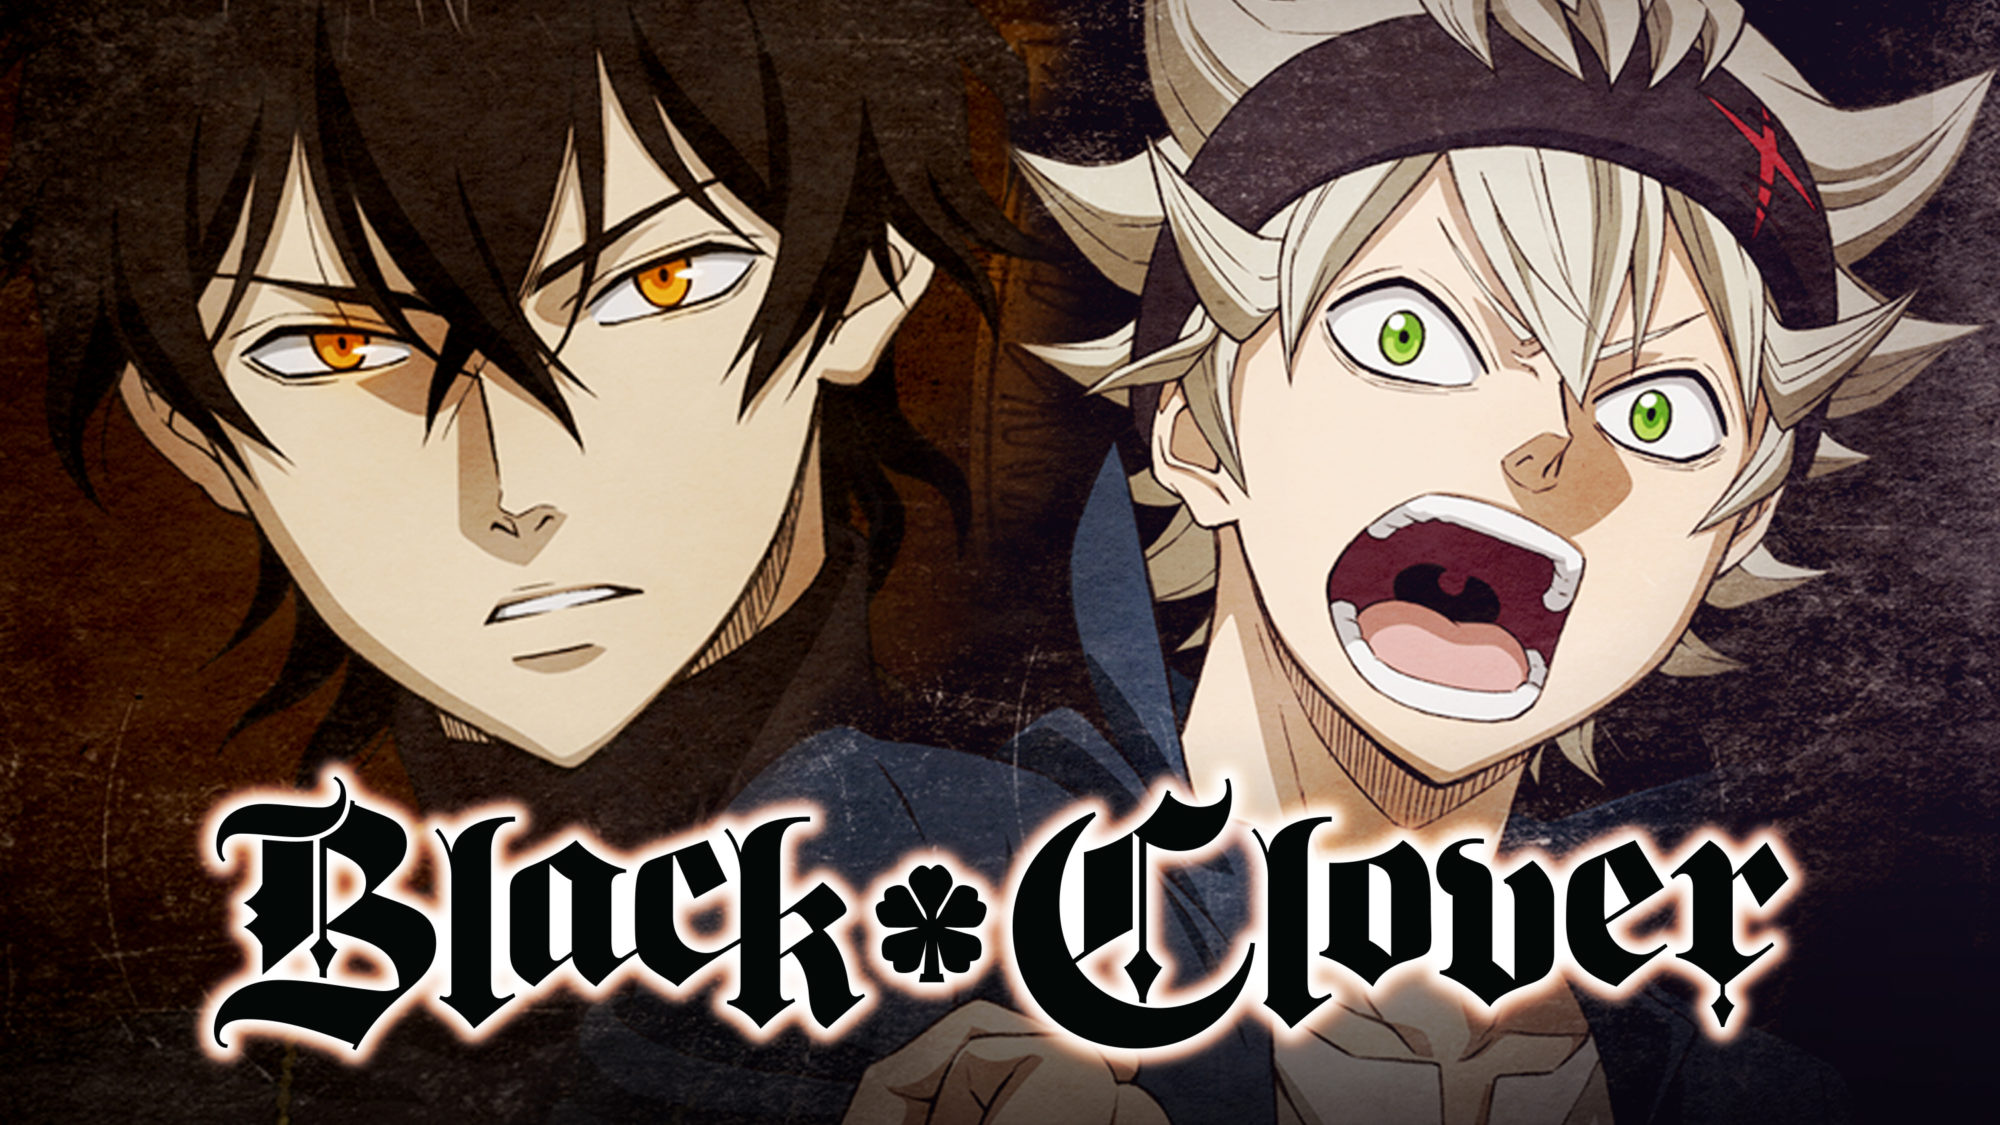 Black Clover Might Feel Cliché, but It's Still a Fun Ride